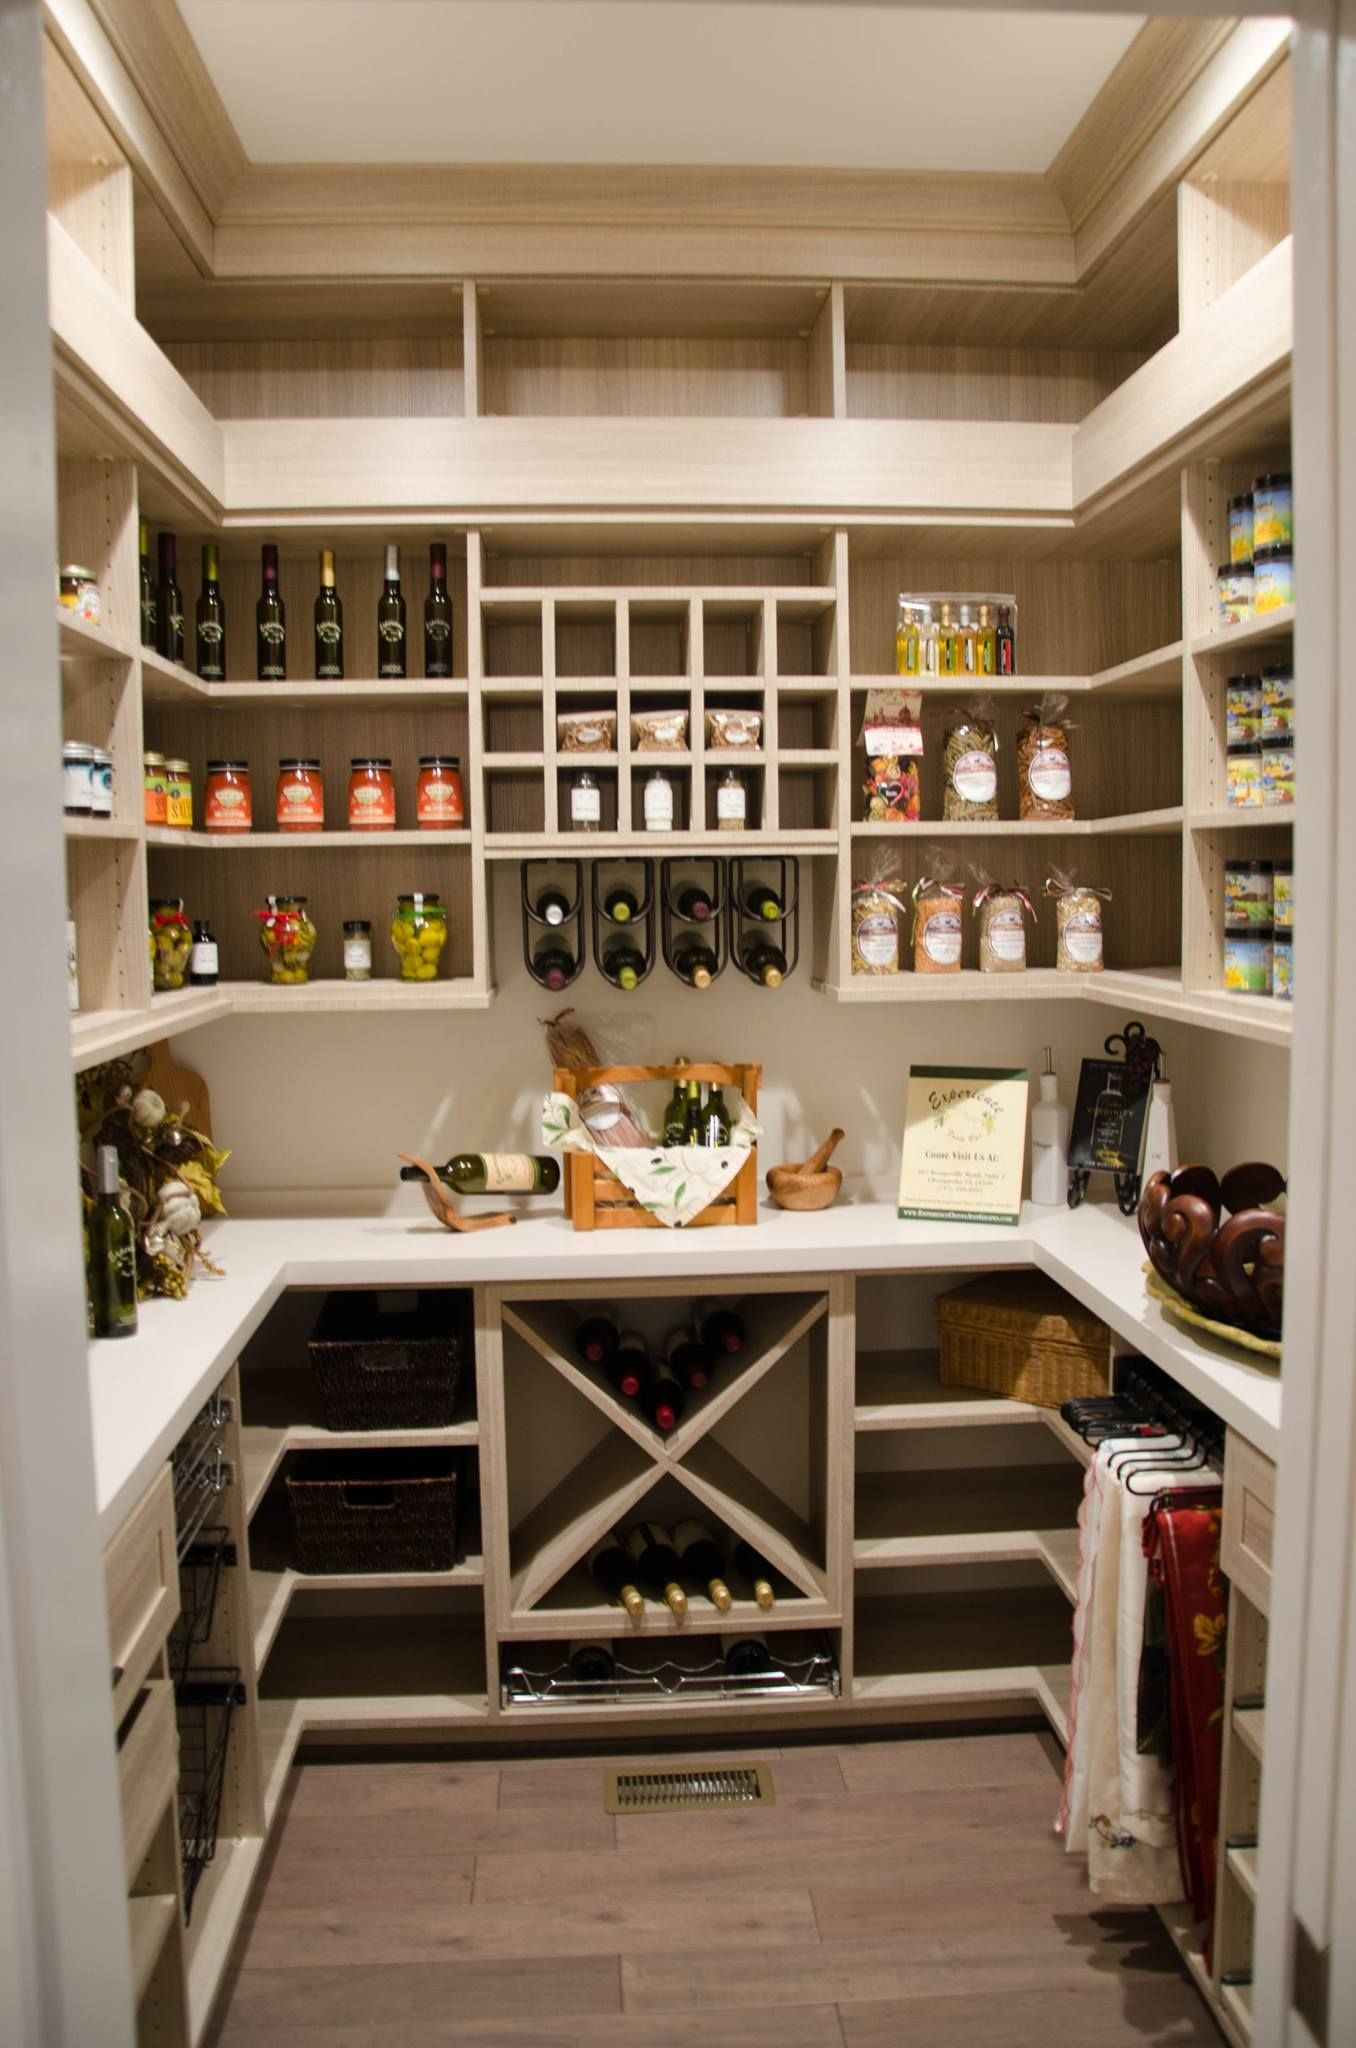 kitchen pantries cabinets lexington ky pin by closet factory on wine cellars home bars in 2019 this custom pantry design features an array of organizational elements from cubbies for spices